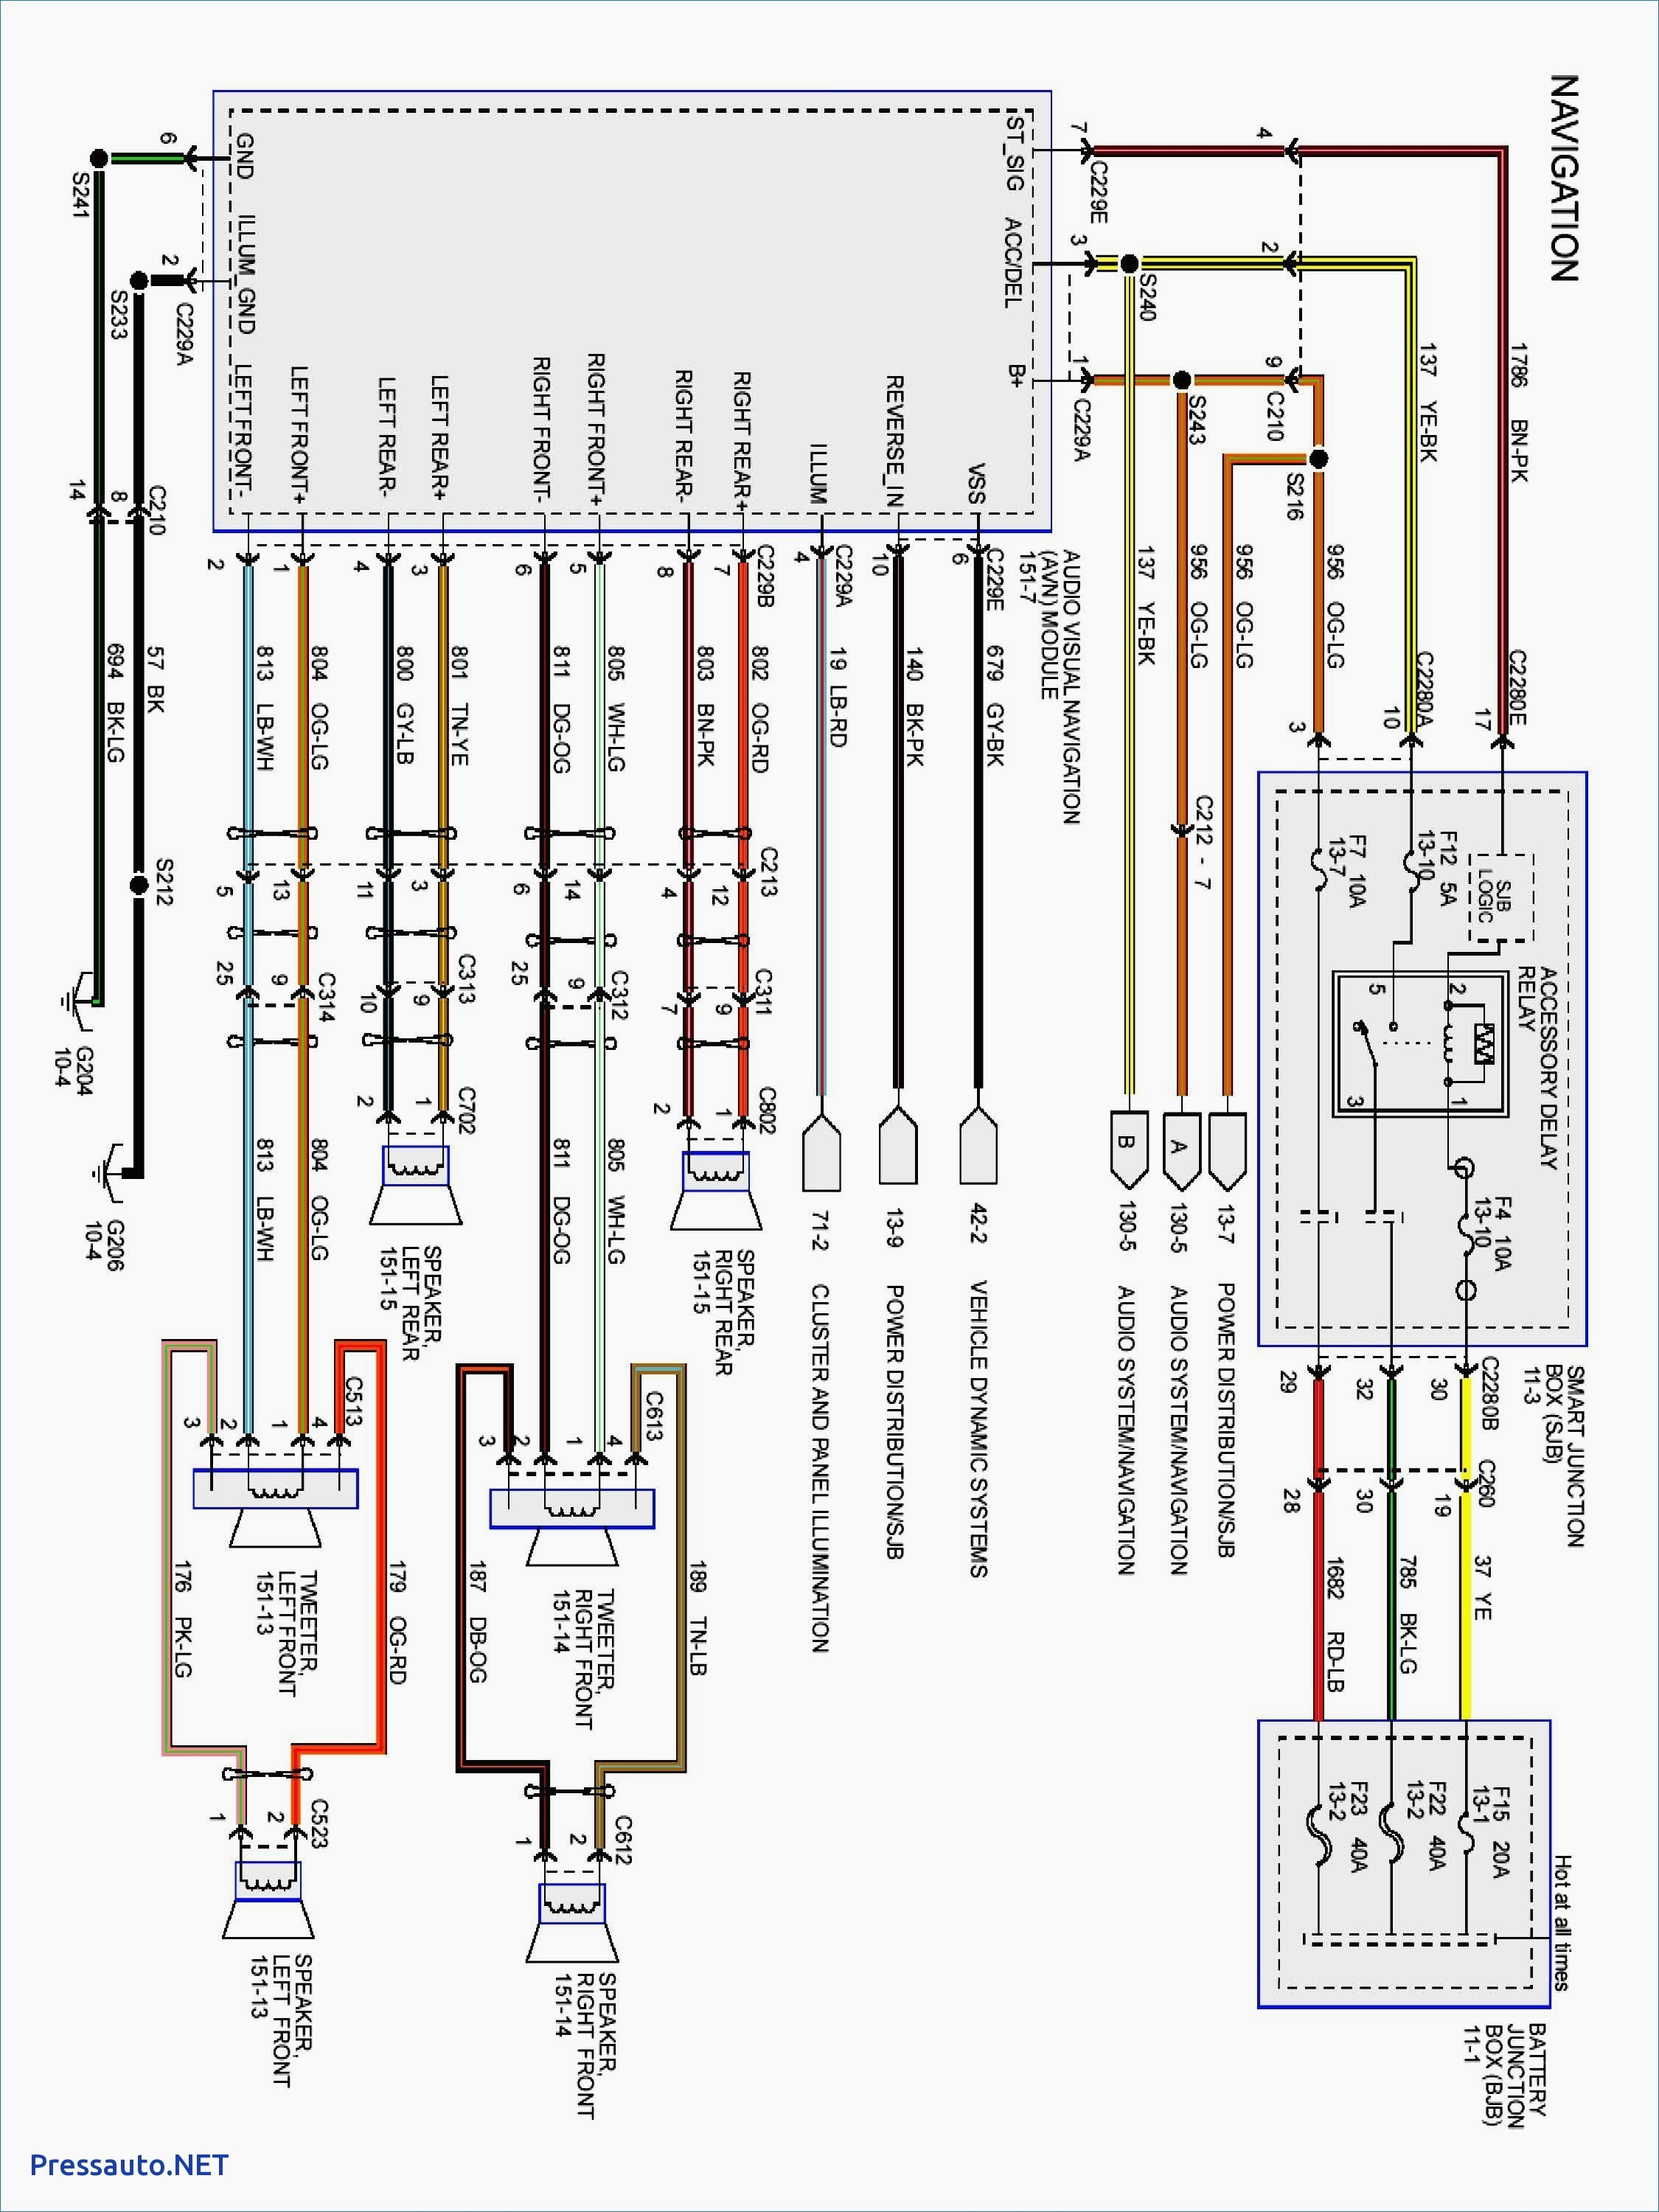 1996 ford F250 Tail Light Wiring Diagram 1996 ford F250 Trailer Wiring Harness Wiring Diagram Week Of 1996 ford F250 Tail Light Wiring Diagram